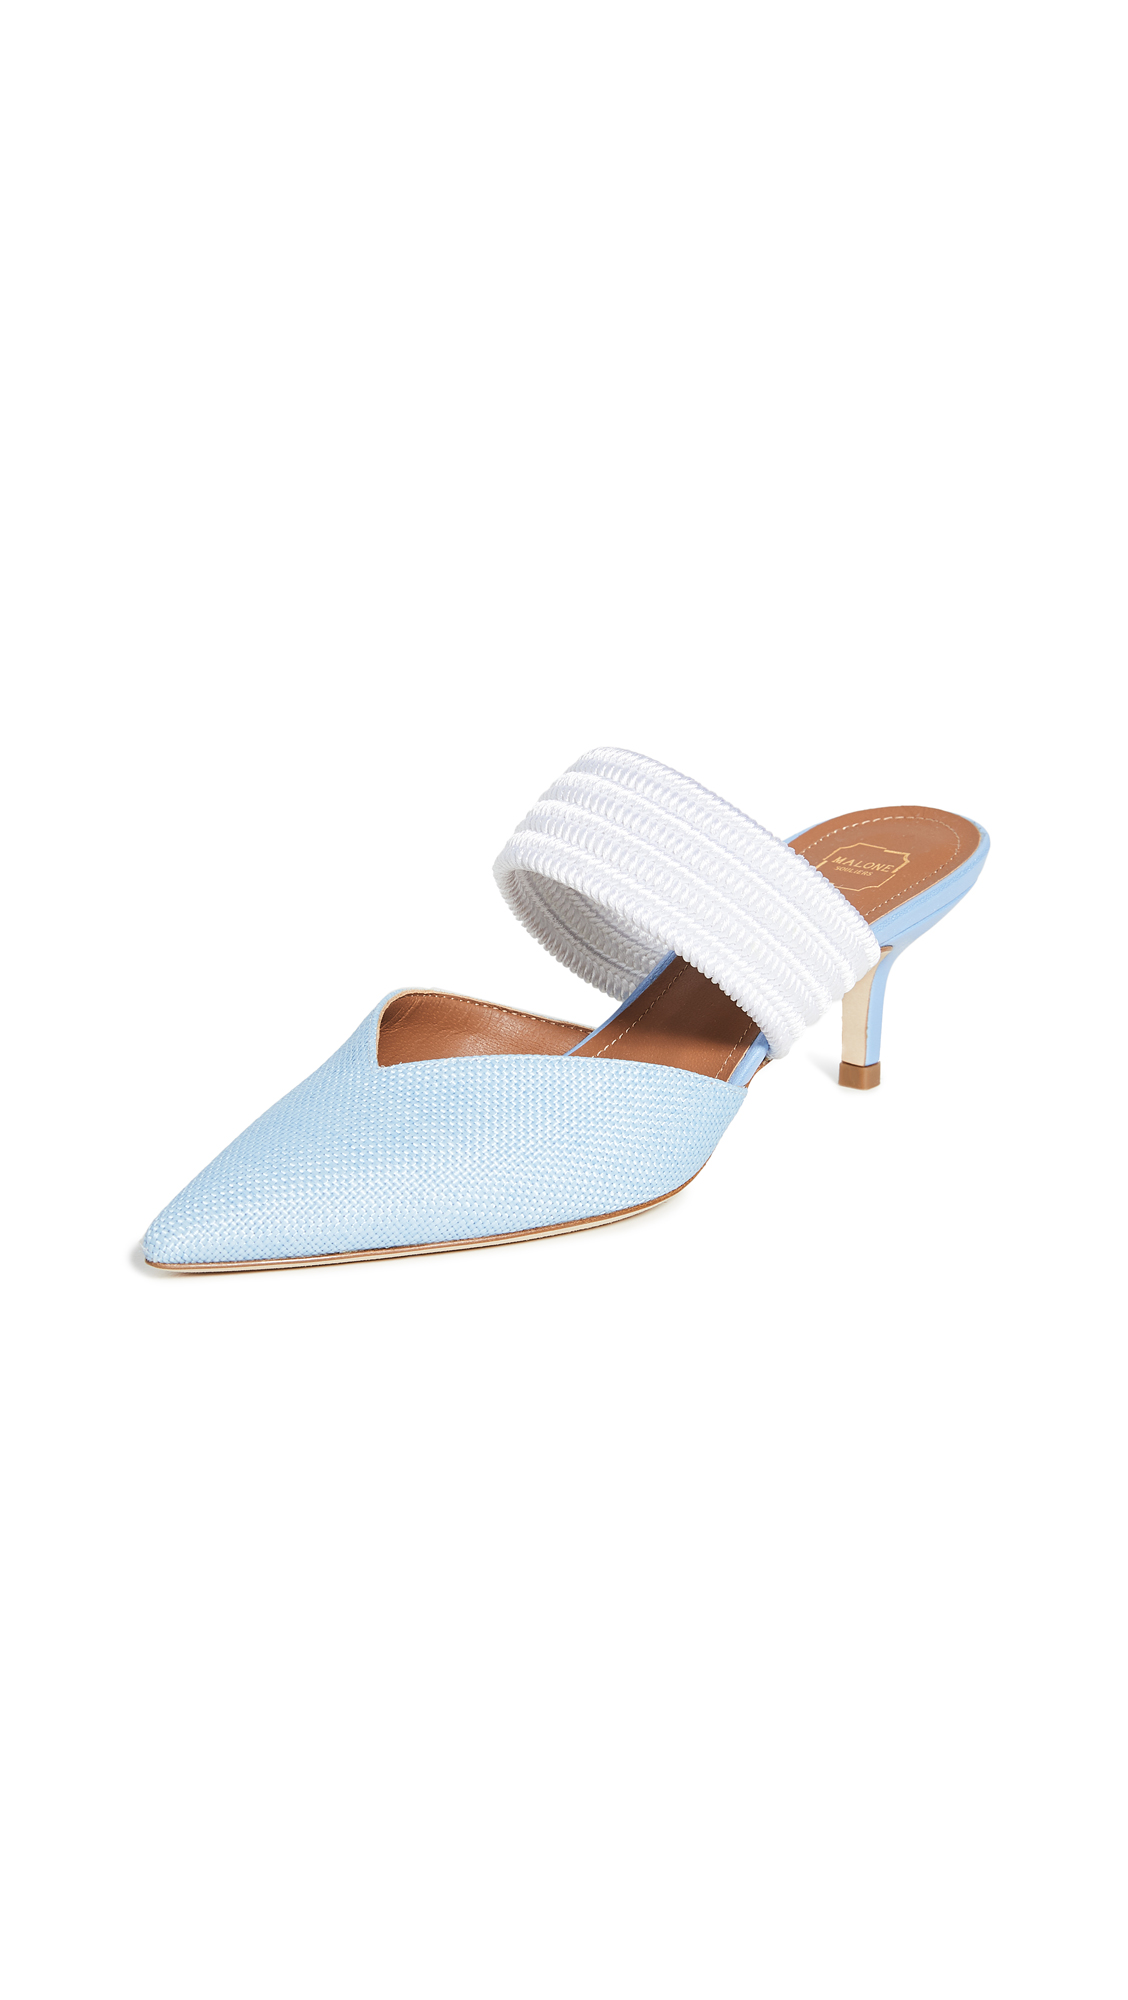 Buy Malone Souliers 45mm Maisie Mules online, shop Malone Souliers